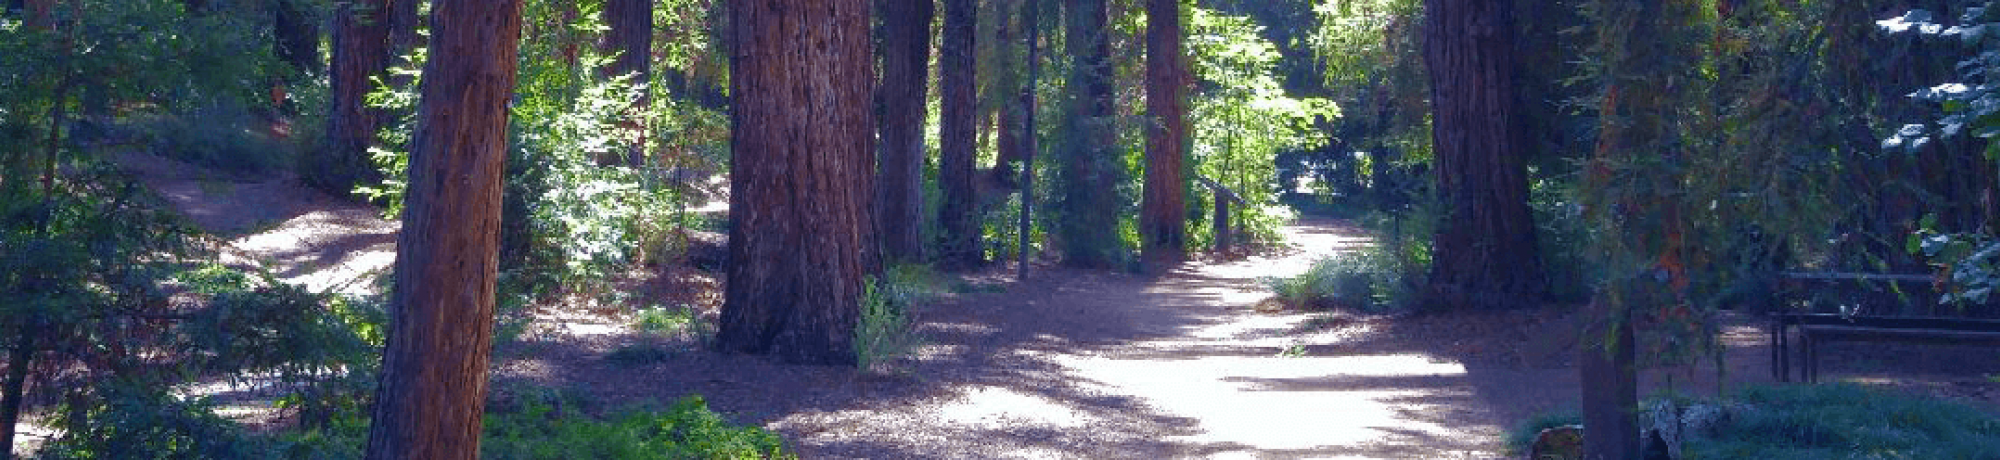 Redwood grove arboretum path